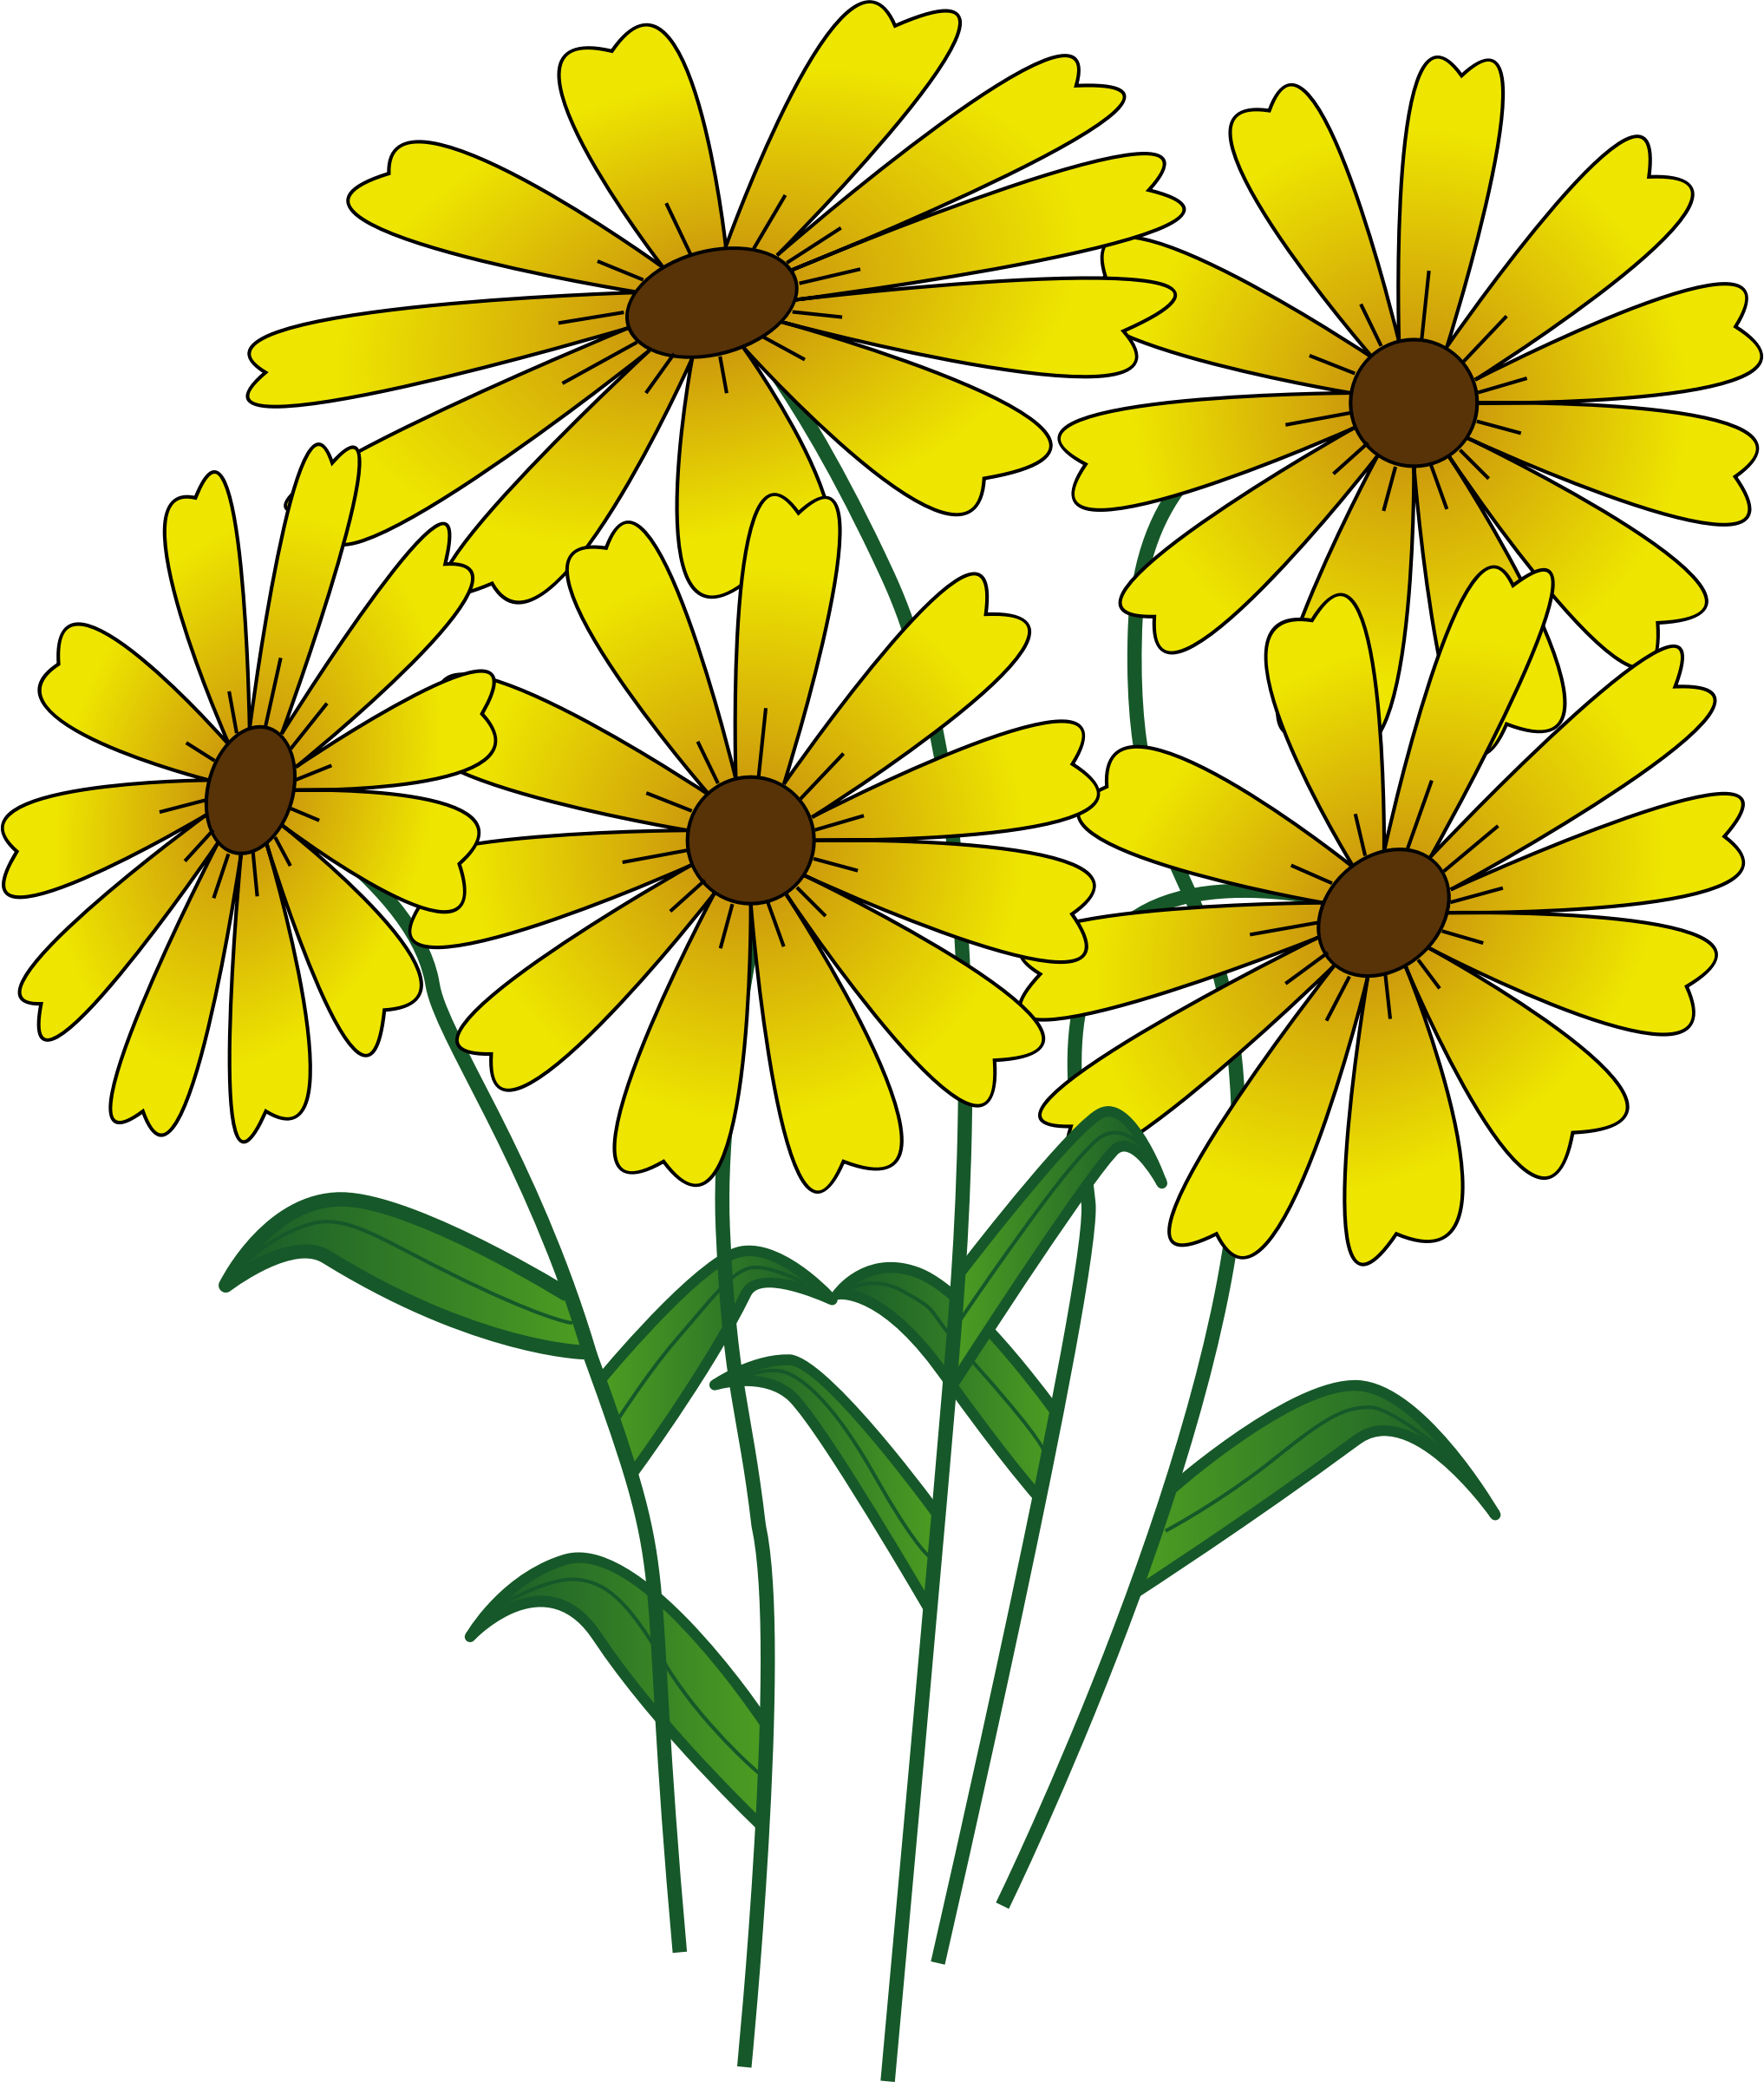 Flower Clipart Pinterest At Getdrawings Free For Personal Use